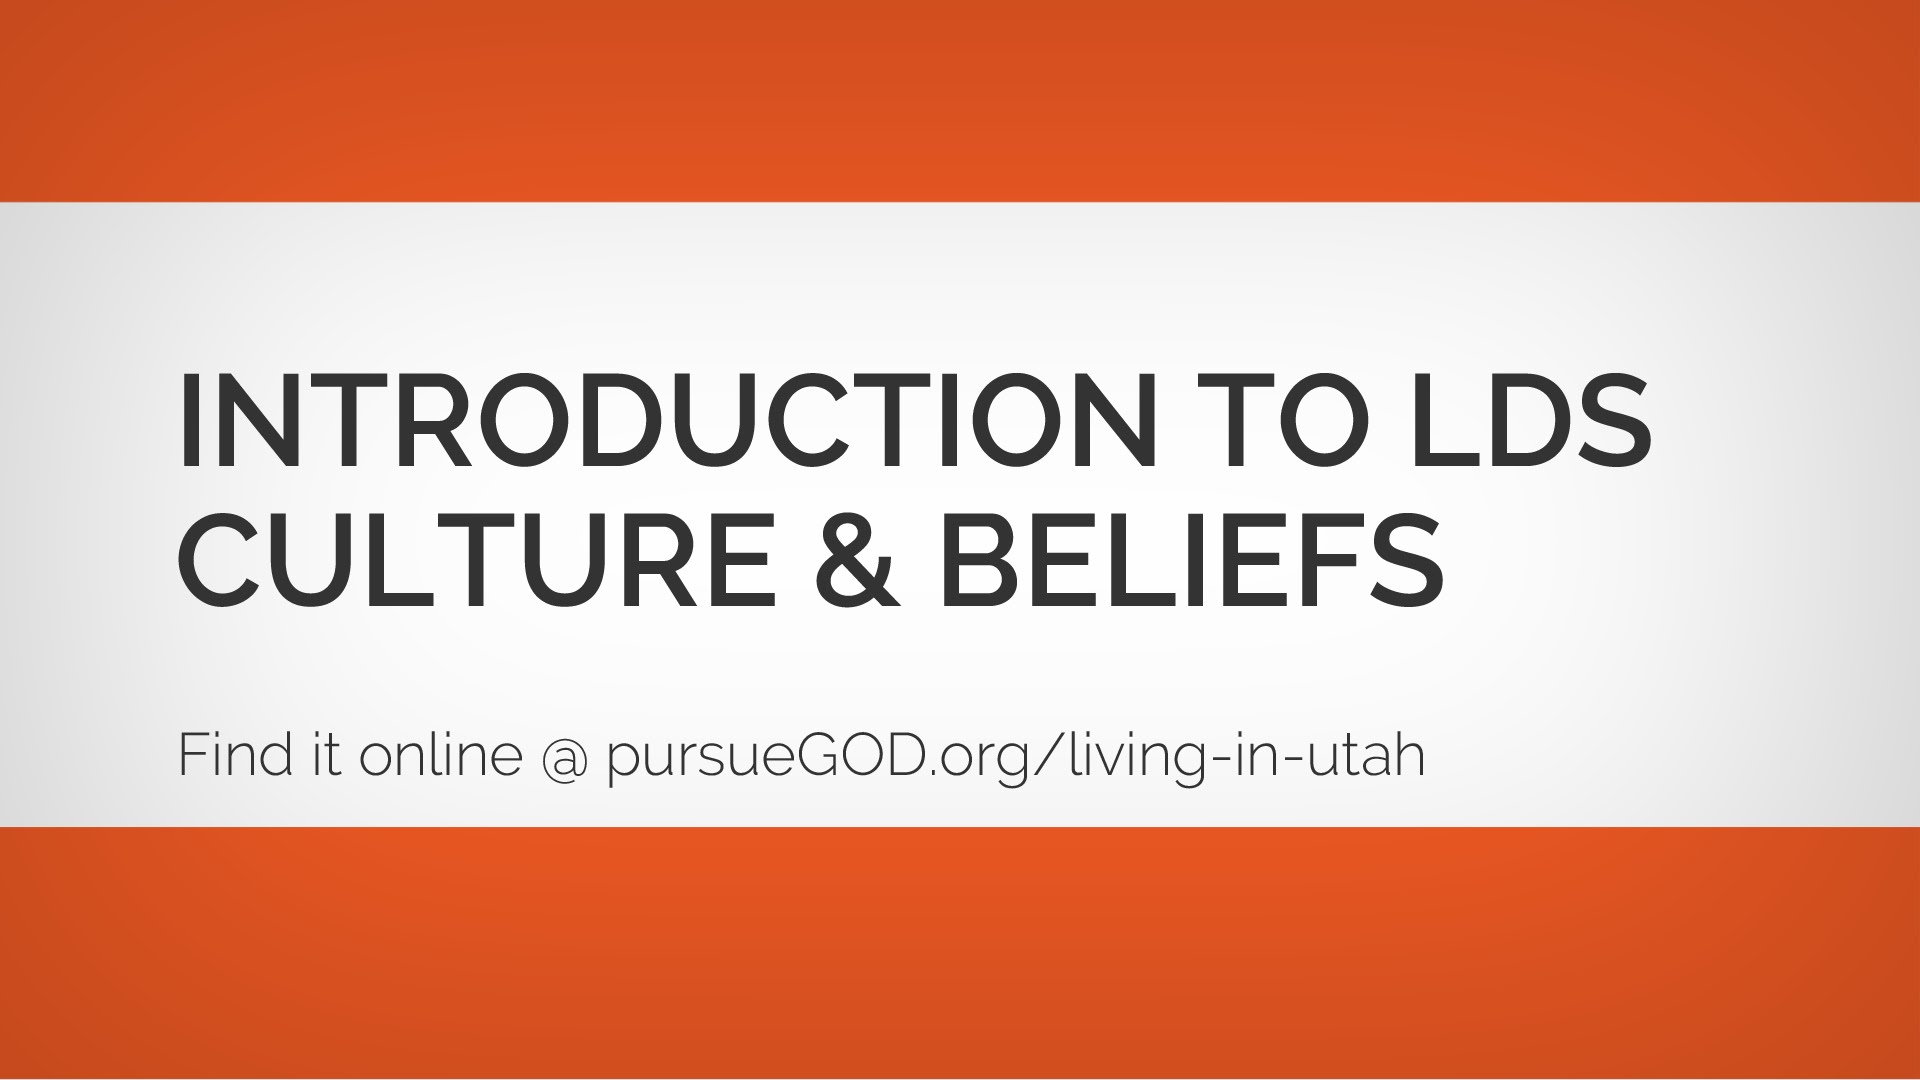 Introduction to LDS Culture and Beliefs